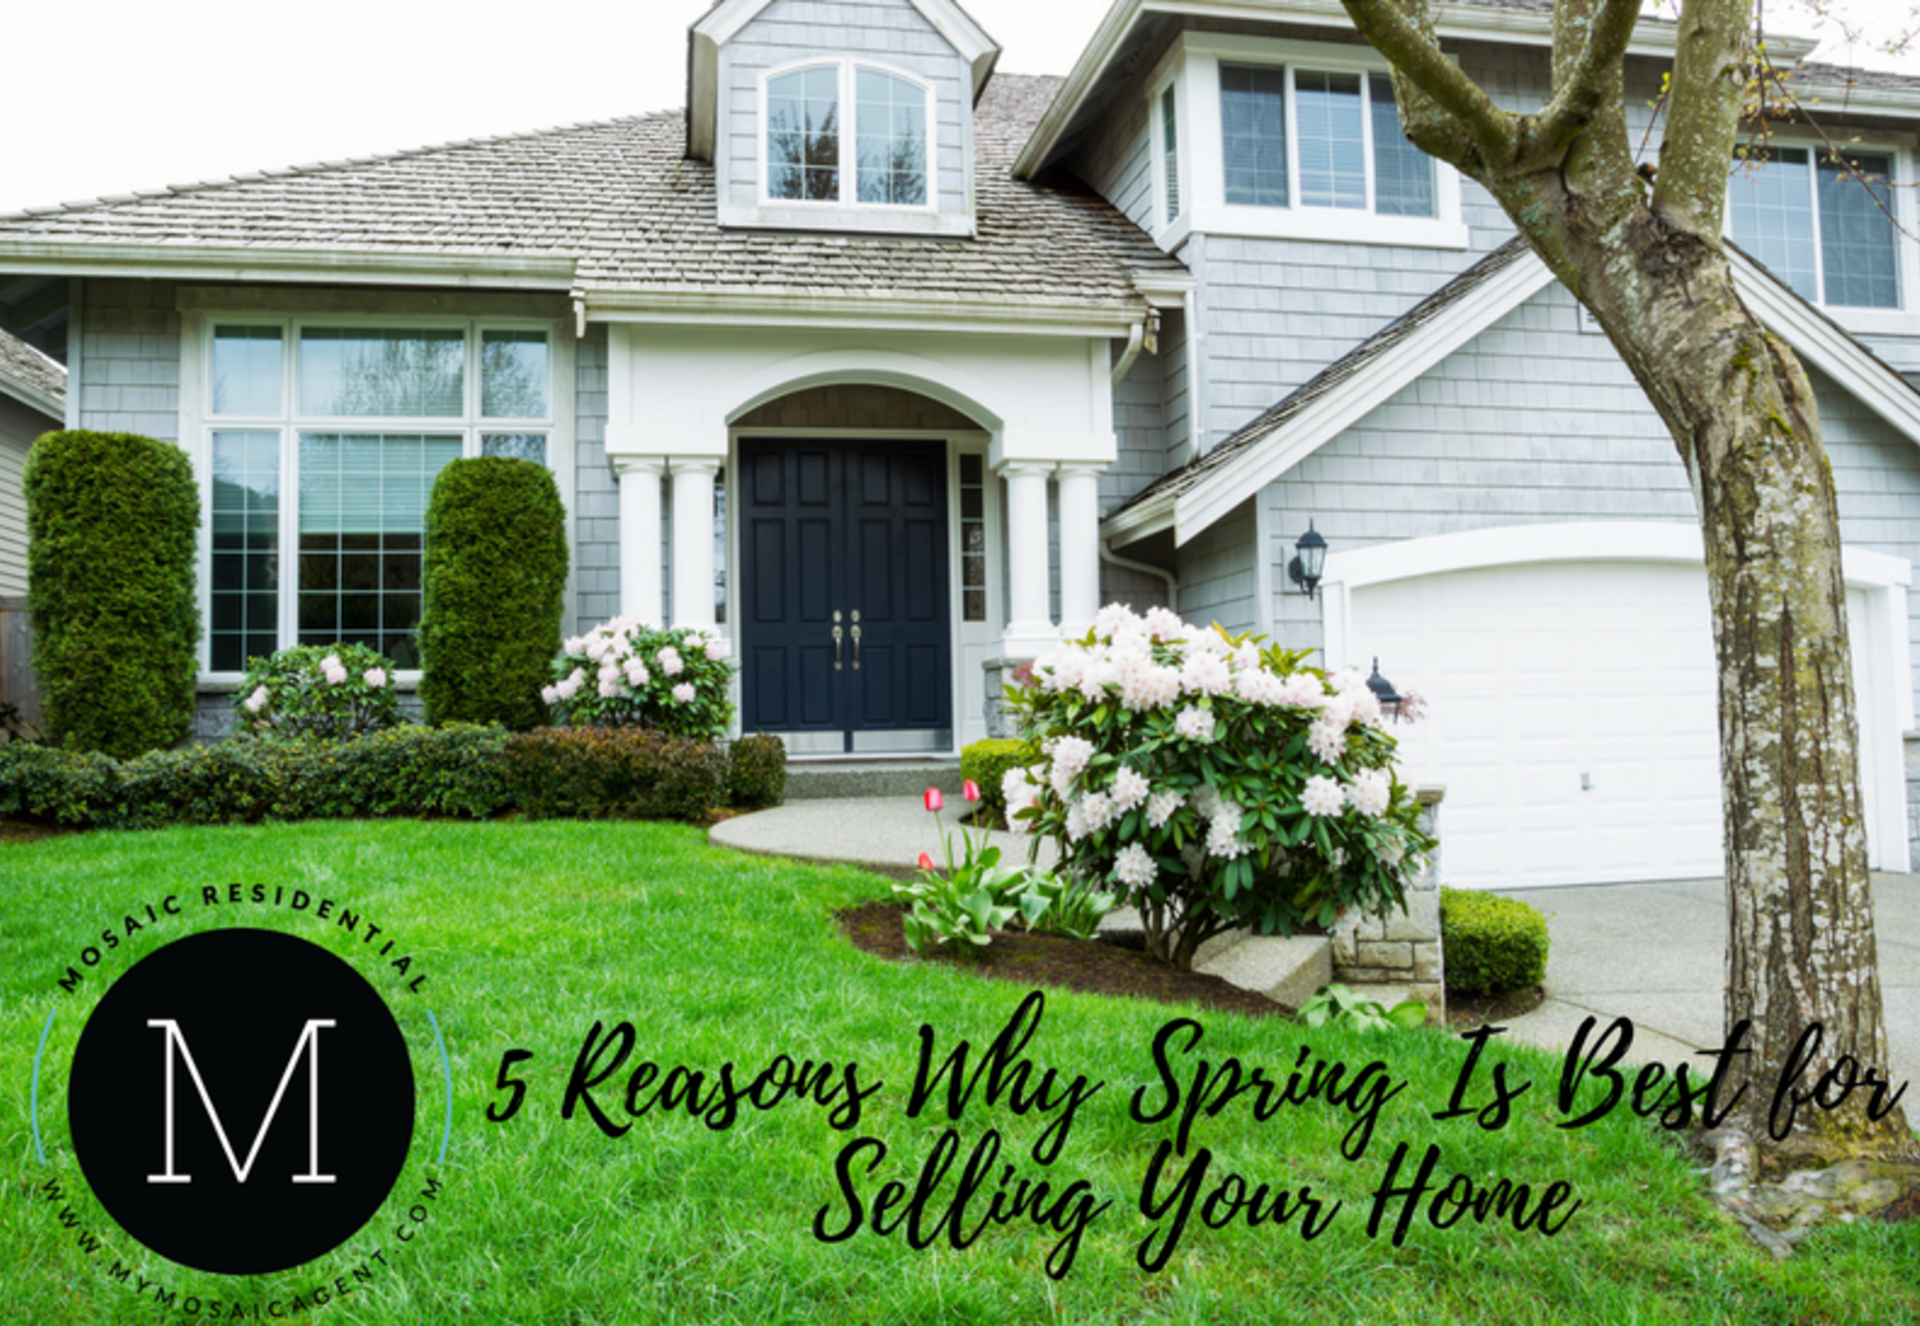 5 Reasons Why Spring Is Best for Selling Your Home